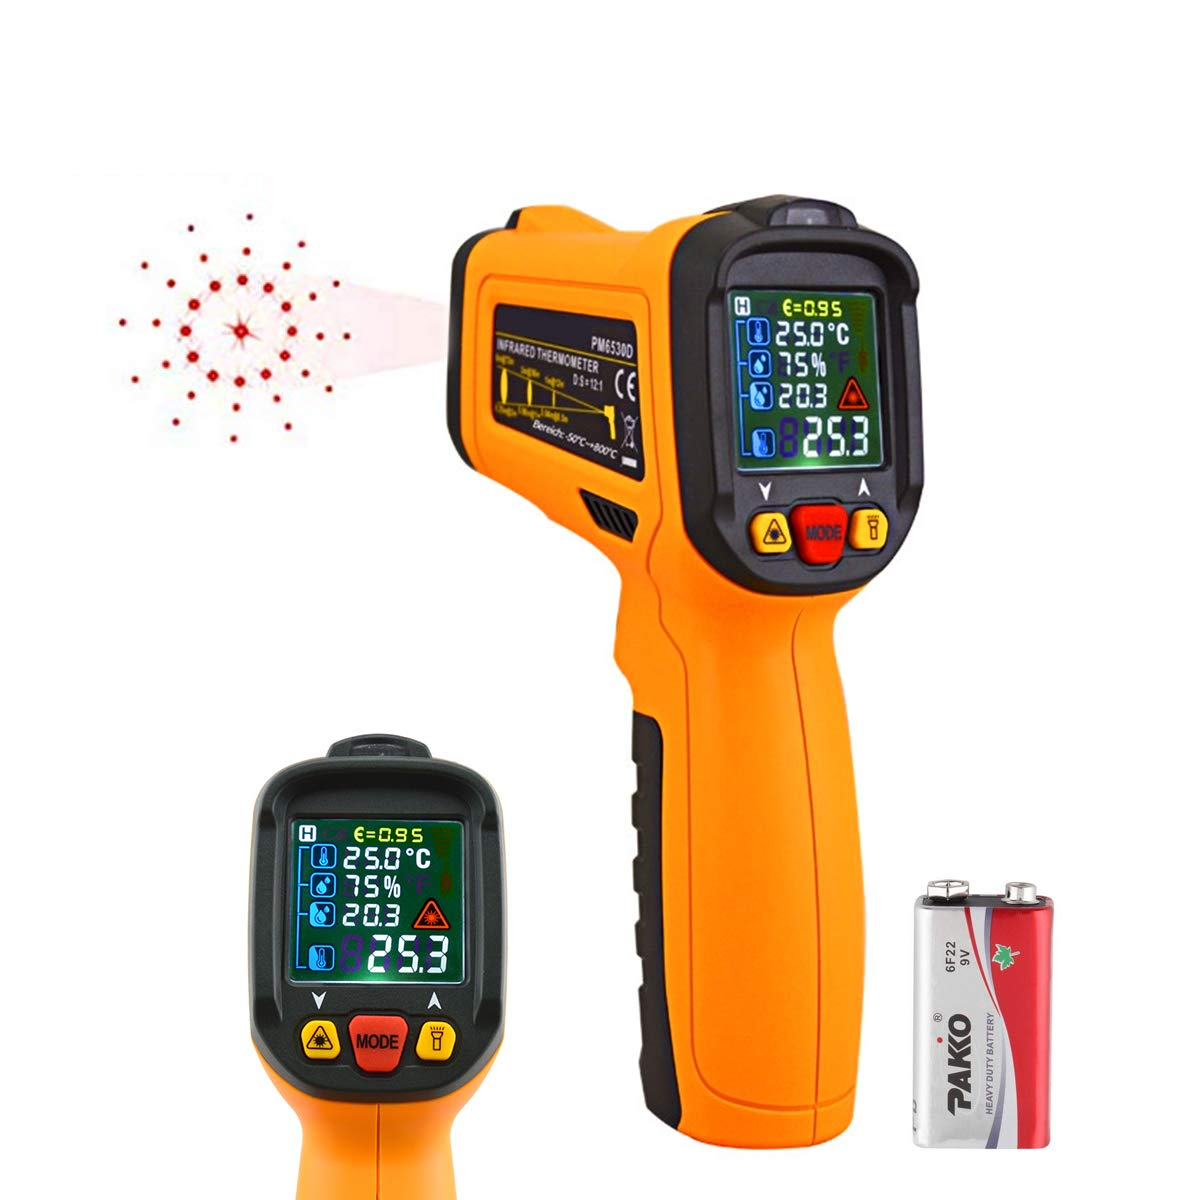 Laser Infrared Thermometer,HANMER Non Contact Temperature Gun Instant-Read -58 ℉to 1472℉with LED Display K-Type Thermocouple for Kitchen Cooking BBQ Automotive and Industrial PM6530D Thermometer by HANMATEK (Image #1)